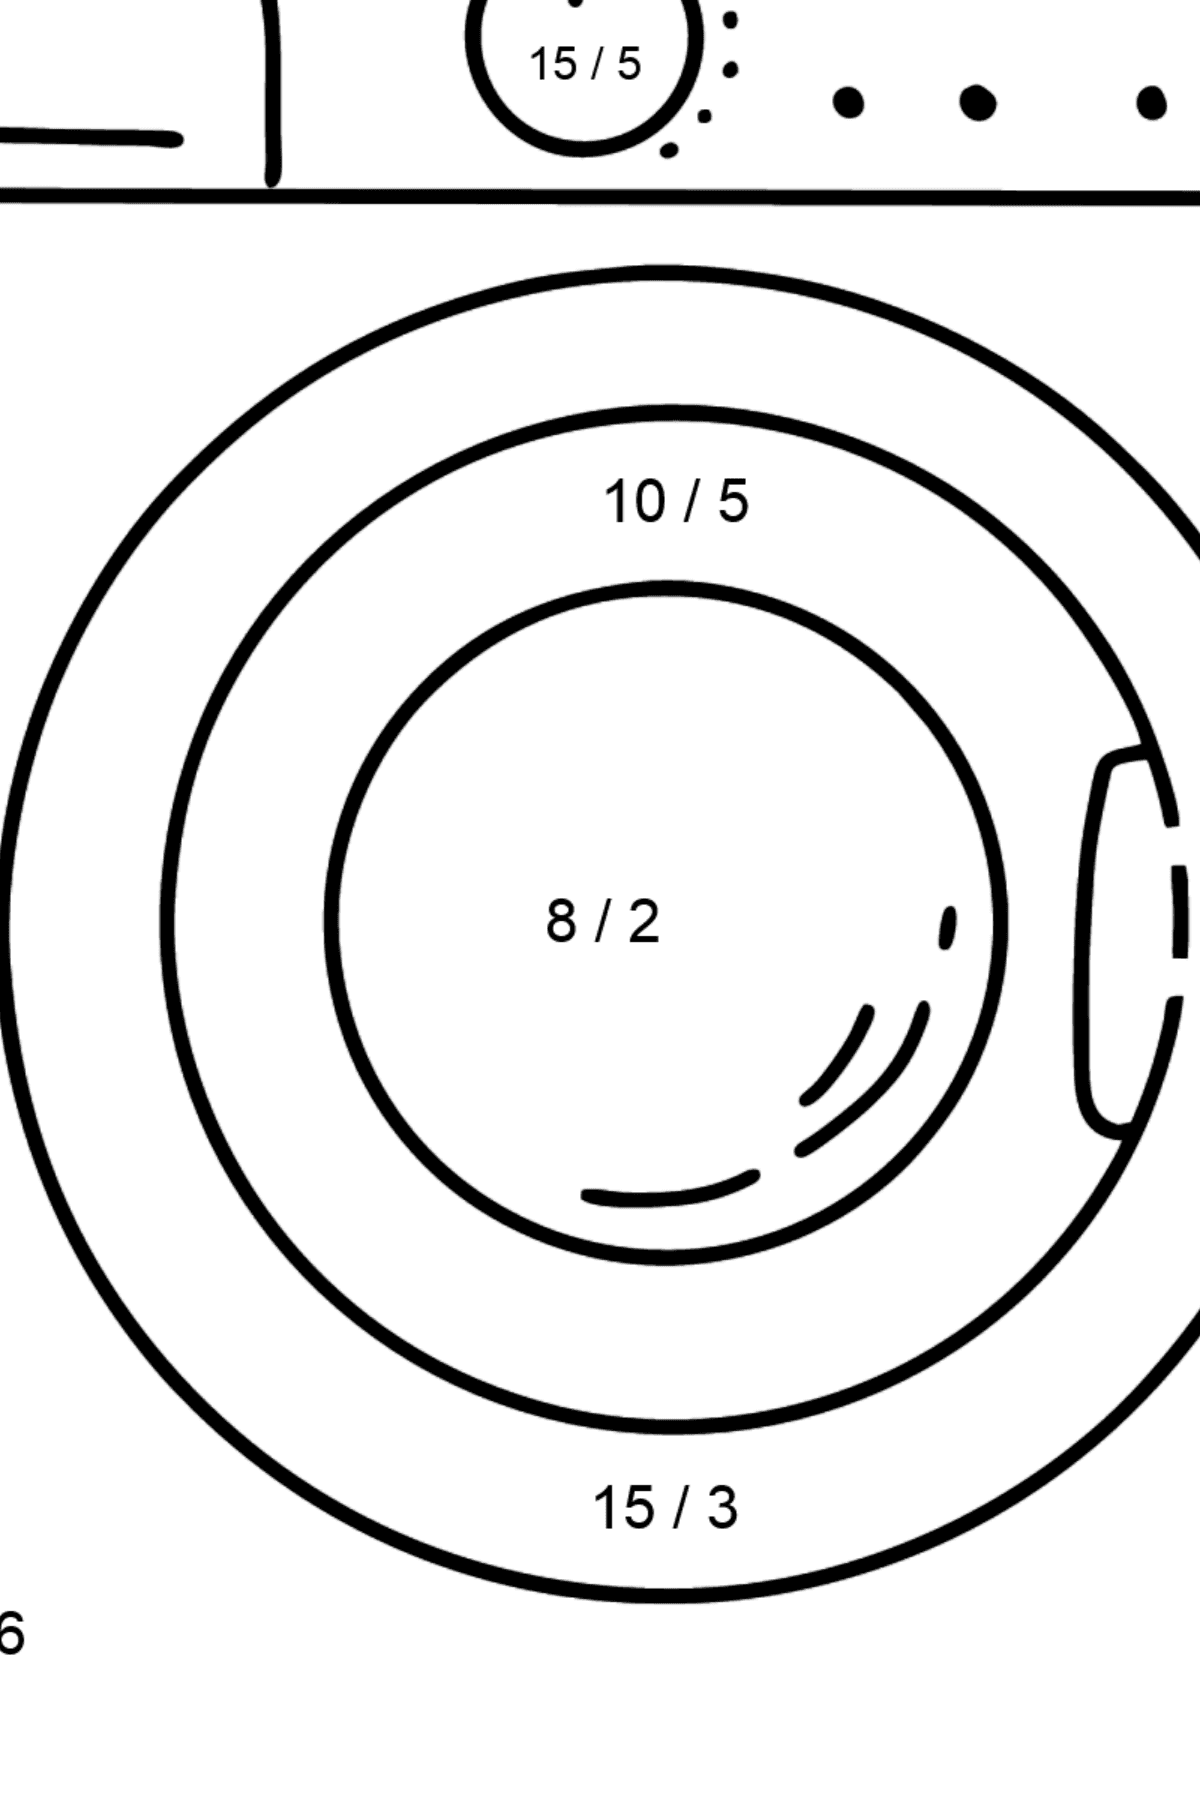 Dishwashe coloring page - Math Coloring - Division for Kids